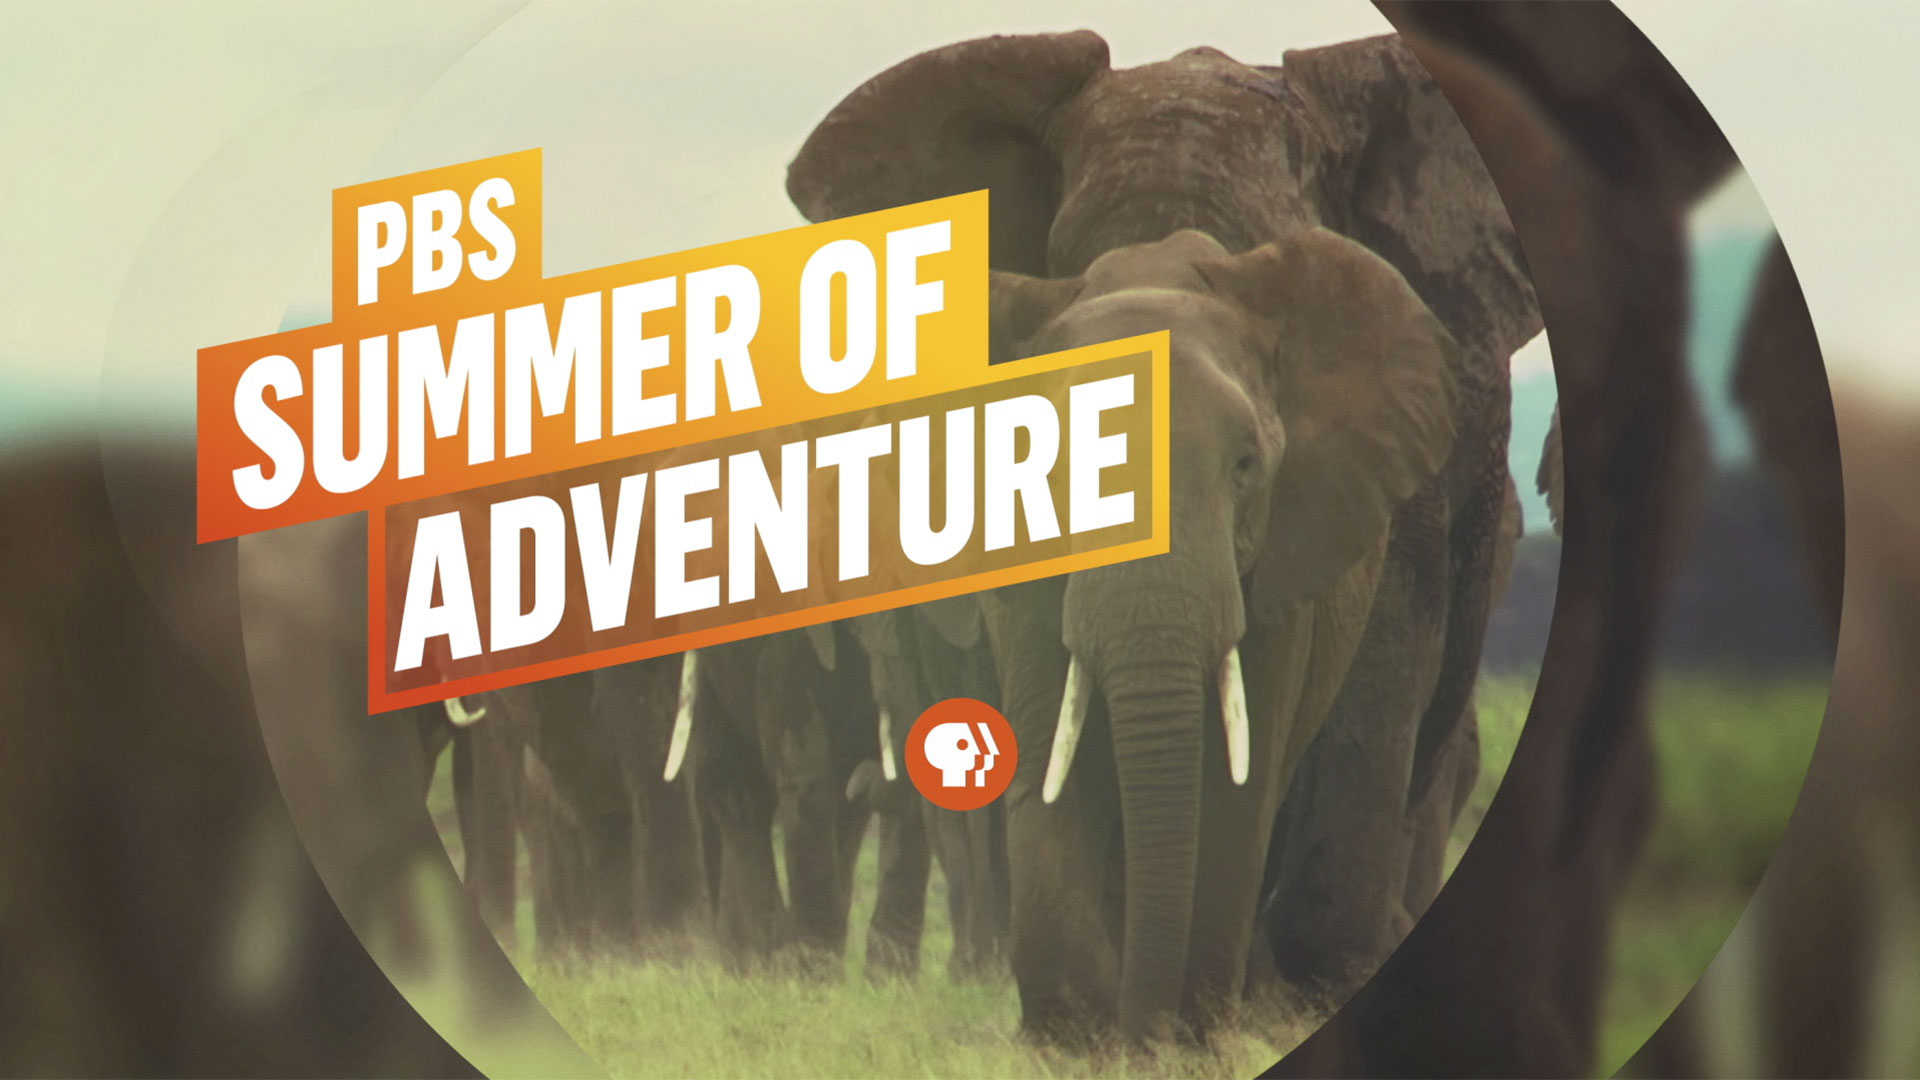 The PBS Summer of Adventure begins June 20, 2017.